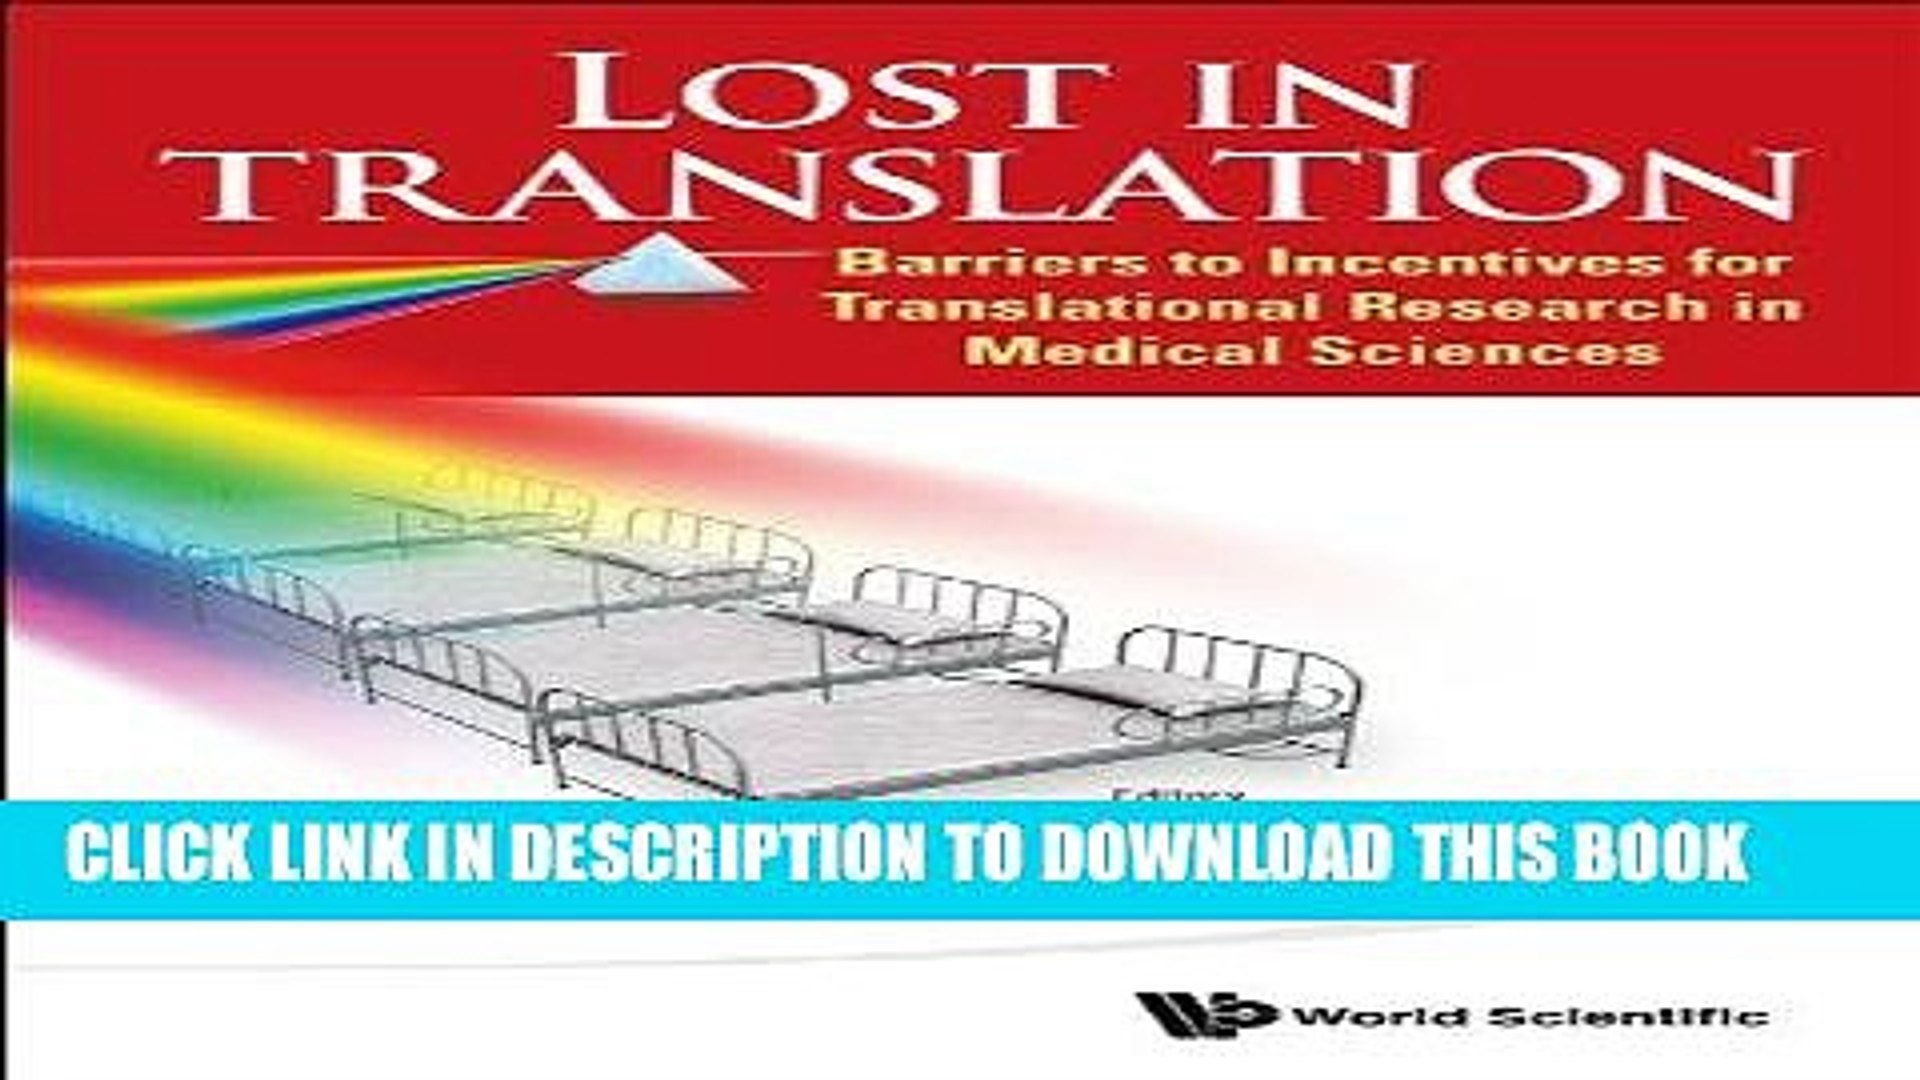 Amazing Ebook Lost In Translation Barriers To Incentives For Translational Research In Medical Sciences Machost Co Dining Chair Design Ideas Machostcouk